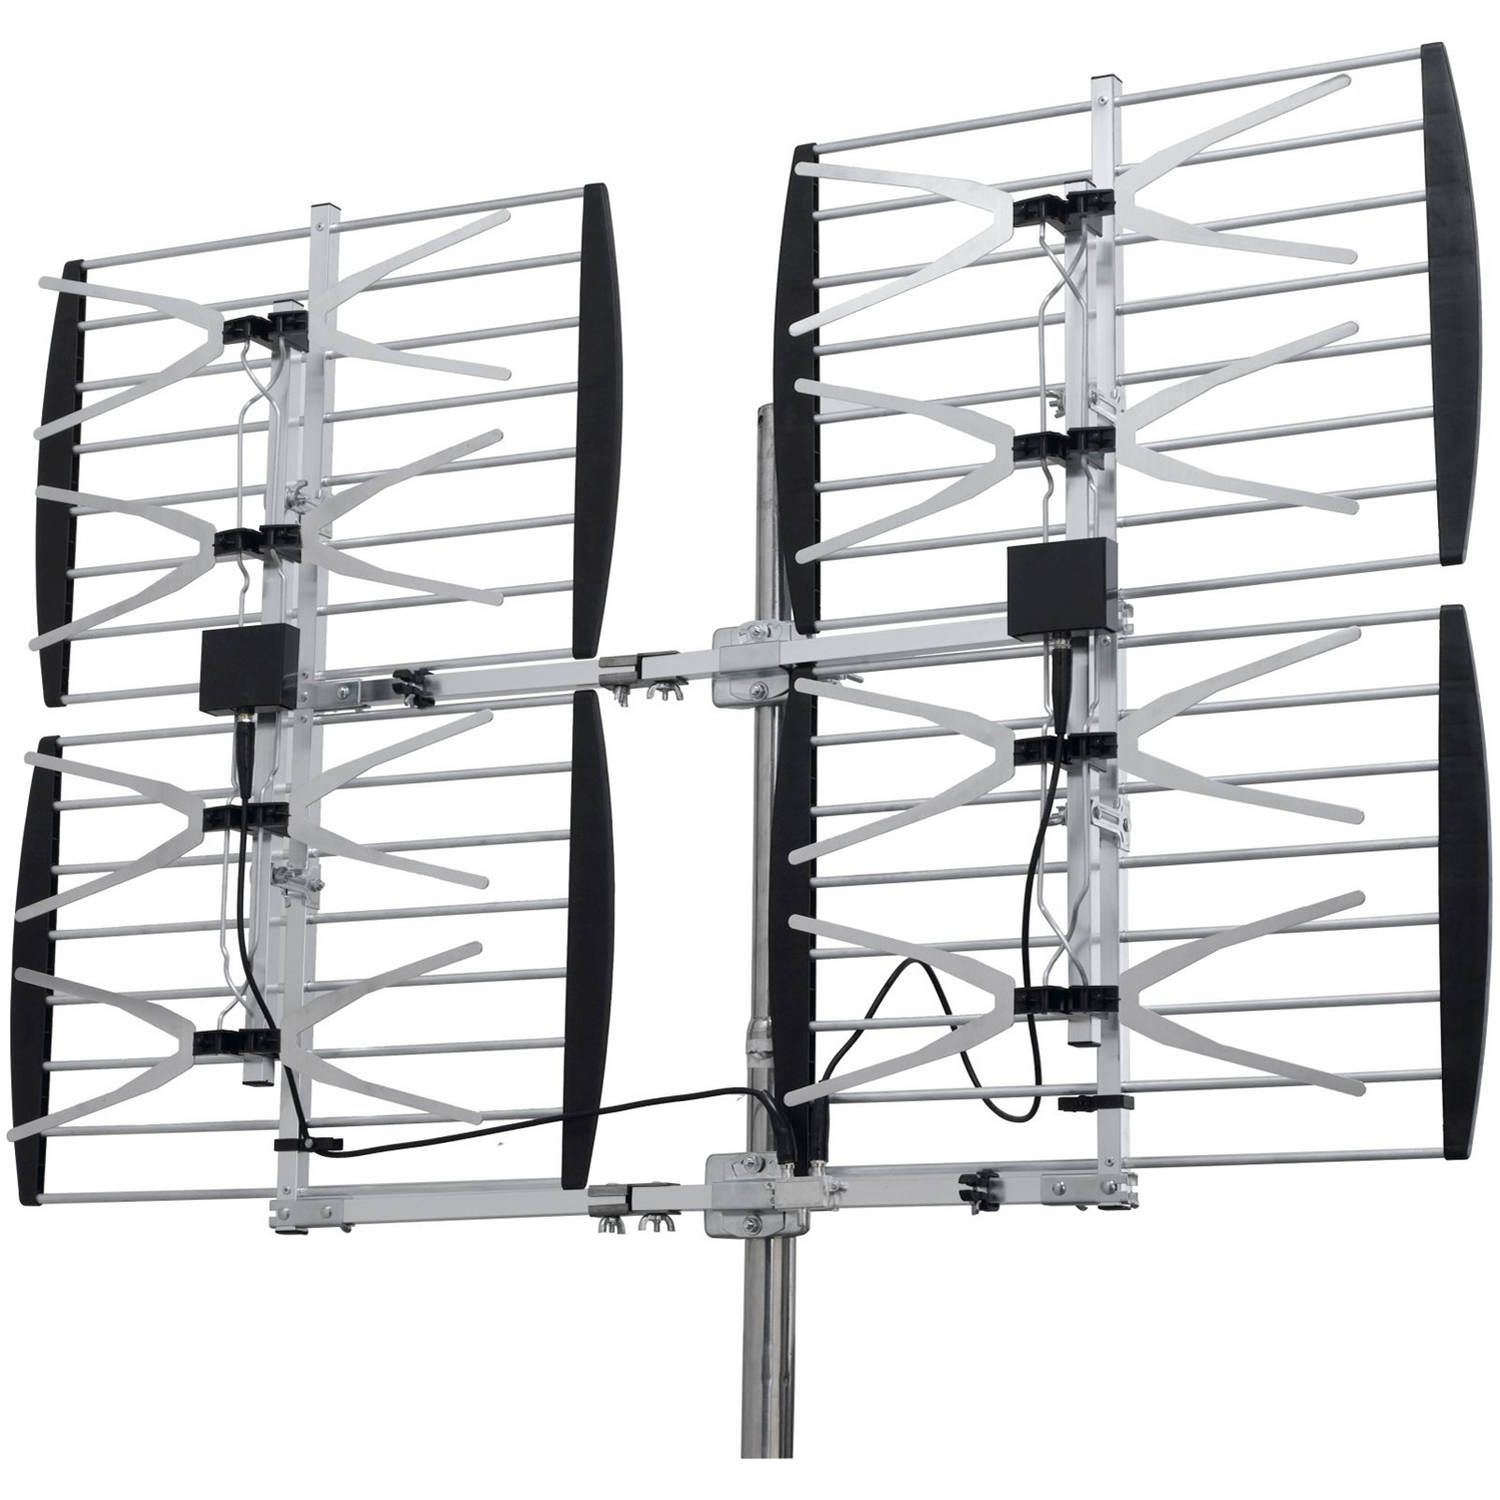 Digiwave 8 Bay Ultra-Clear Digital Outdoor TV Antenna, ANT7286